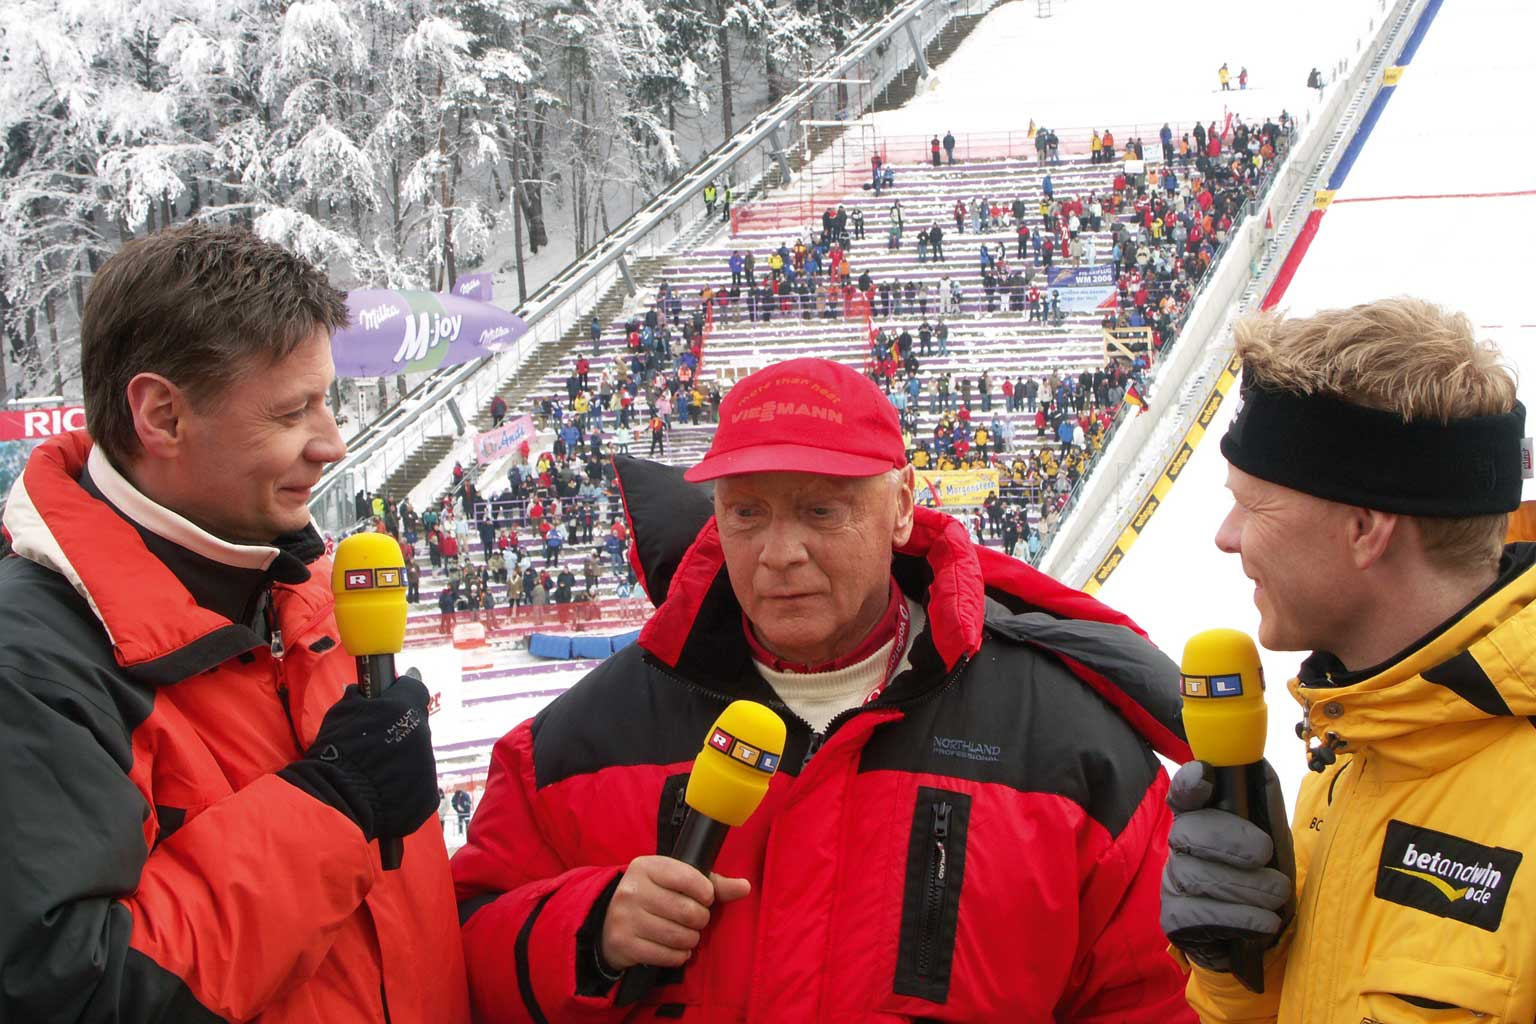 Team Event Four Hills Tournament Buderus Günther Jauch, Niki Lauda and Dieter Thoma